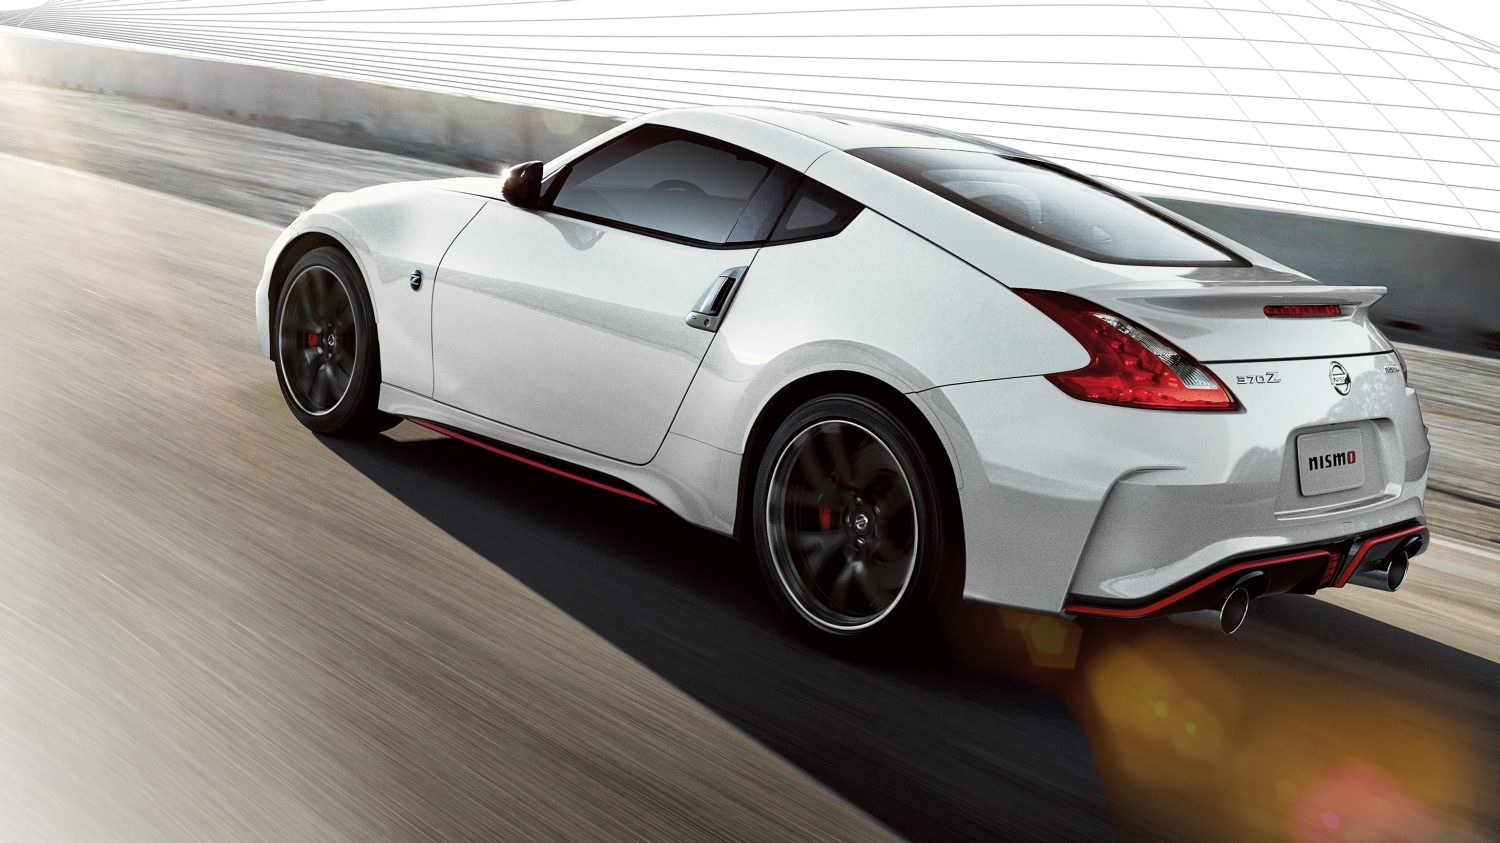 Nissan 370Z COUPÉ WHITE PEARL BRILLIANT - Vista posteriore di 7/8 in movimento sulla strada